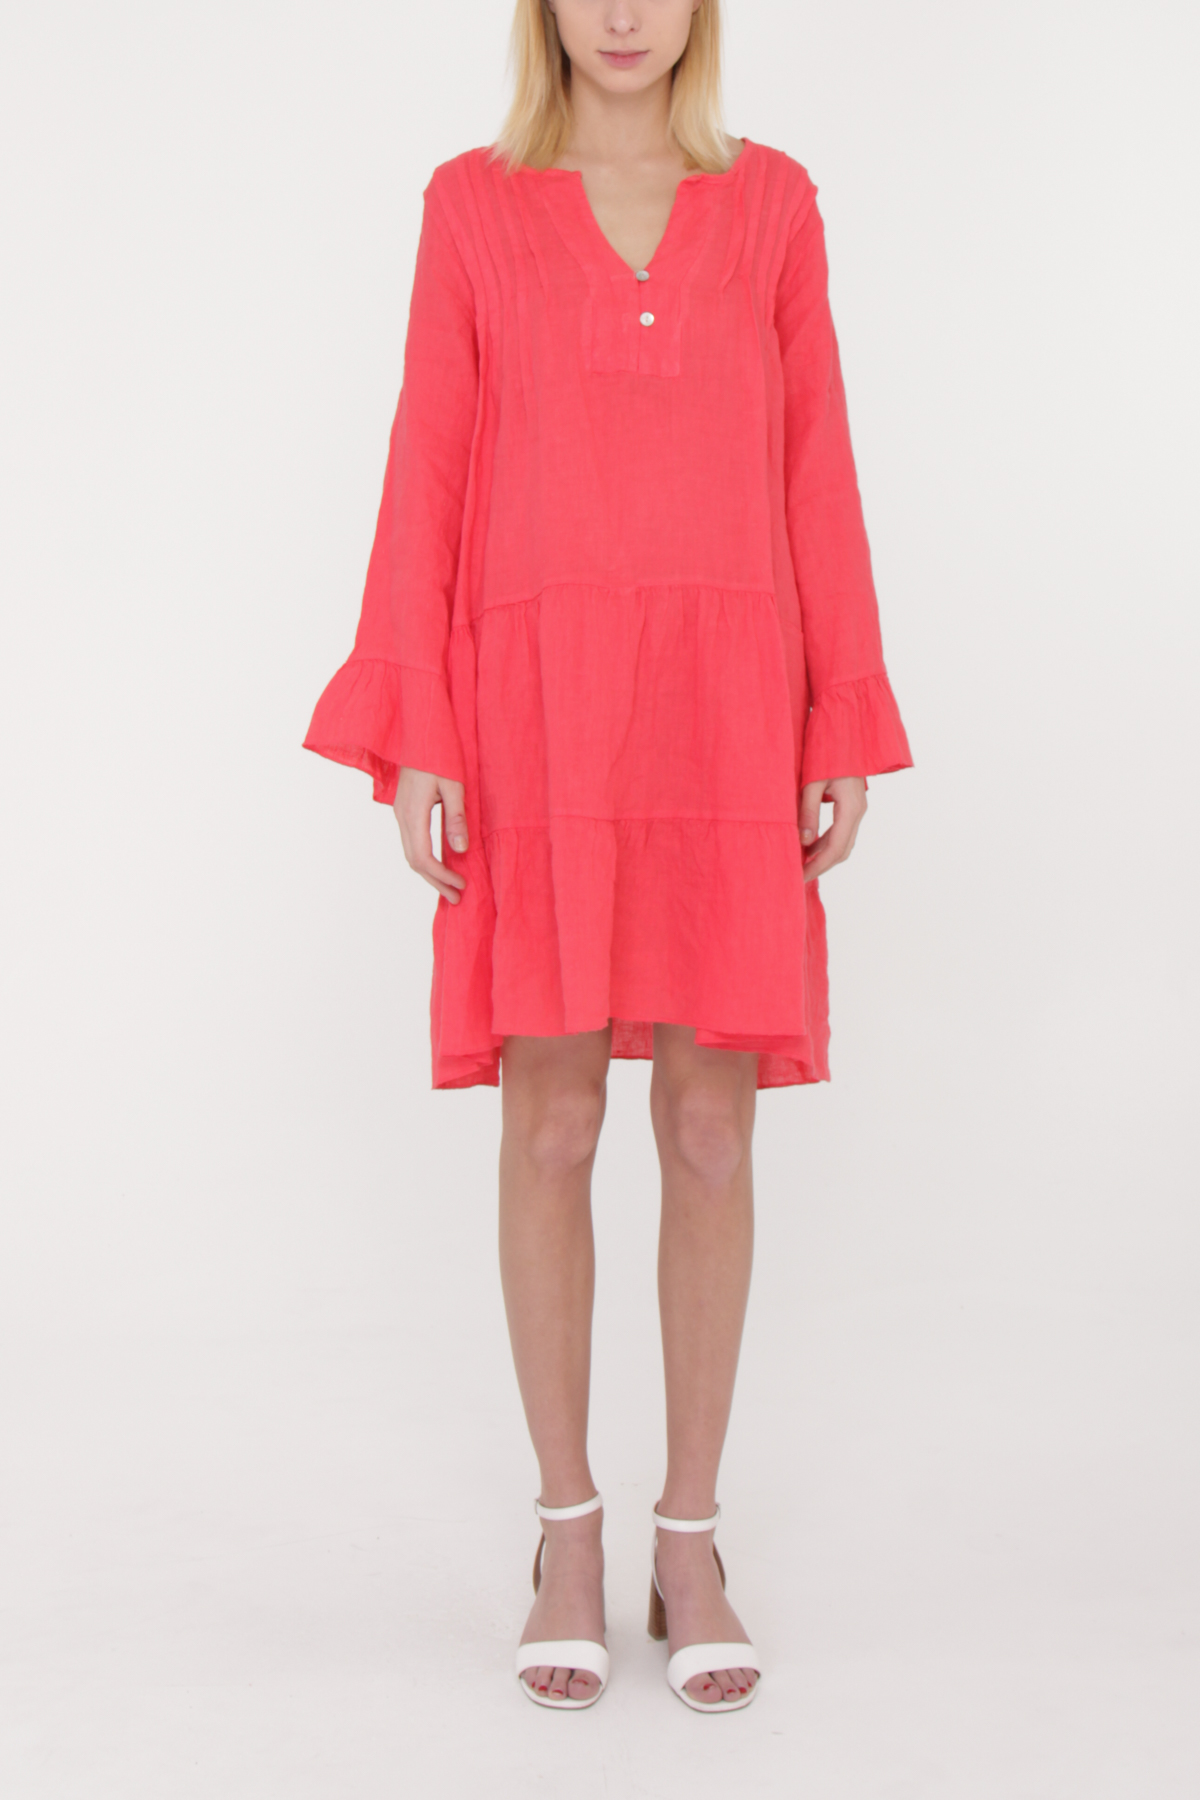 Robes mi-longues Femme Corail Happy Look 71027 #c eFashion Paris